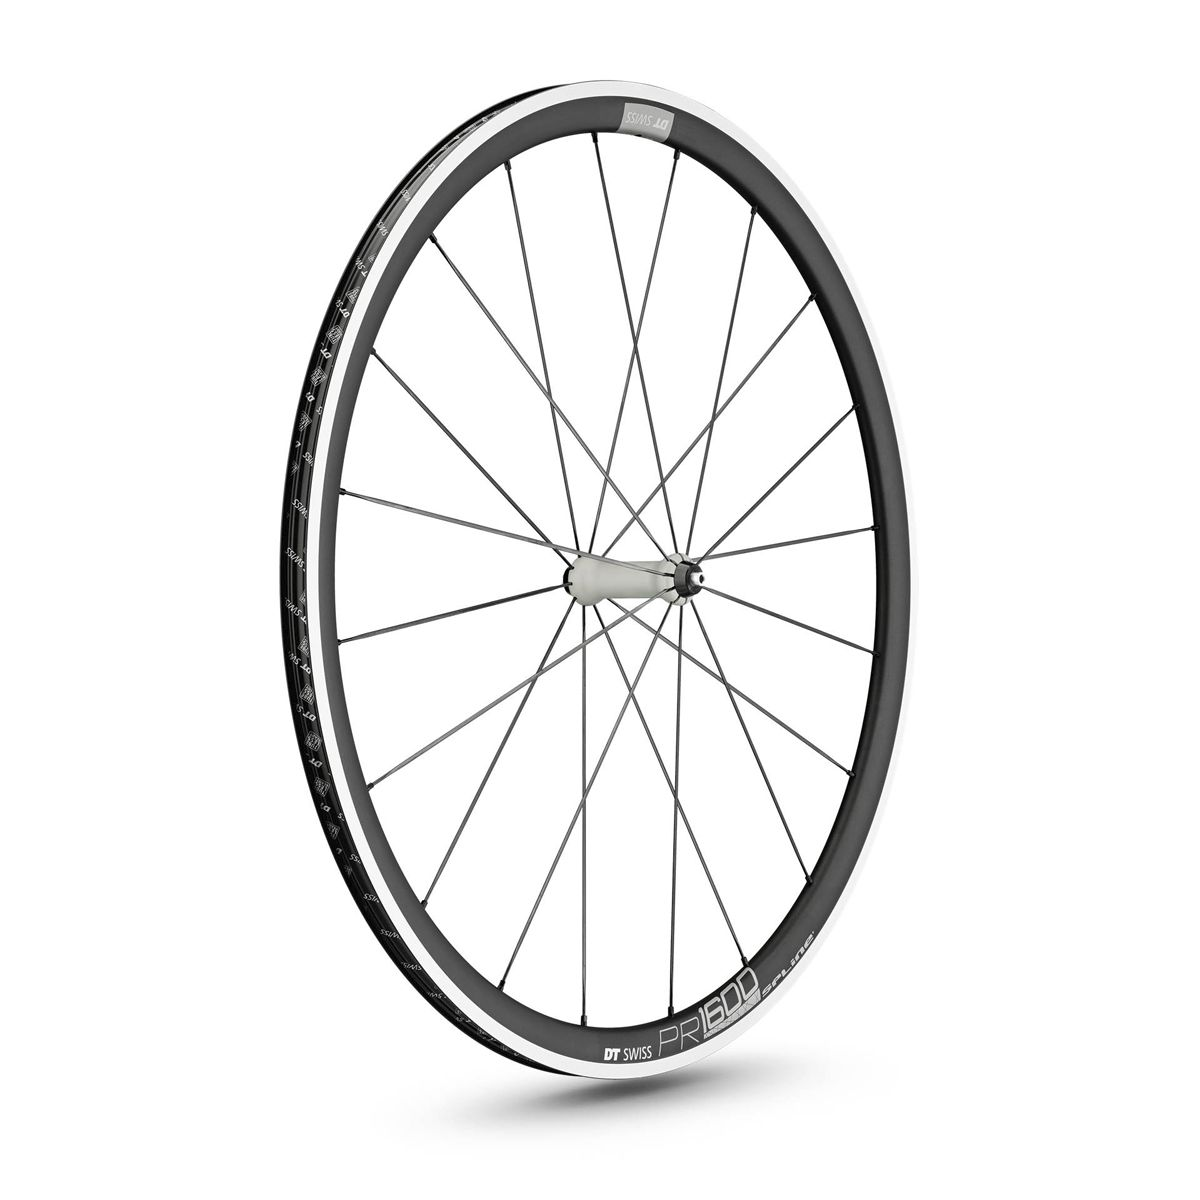 Buy DT Swiss PR 1600 Spline 32 road front wheel 28